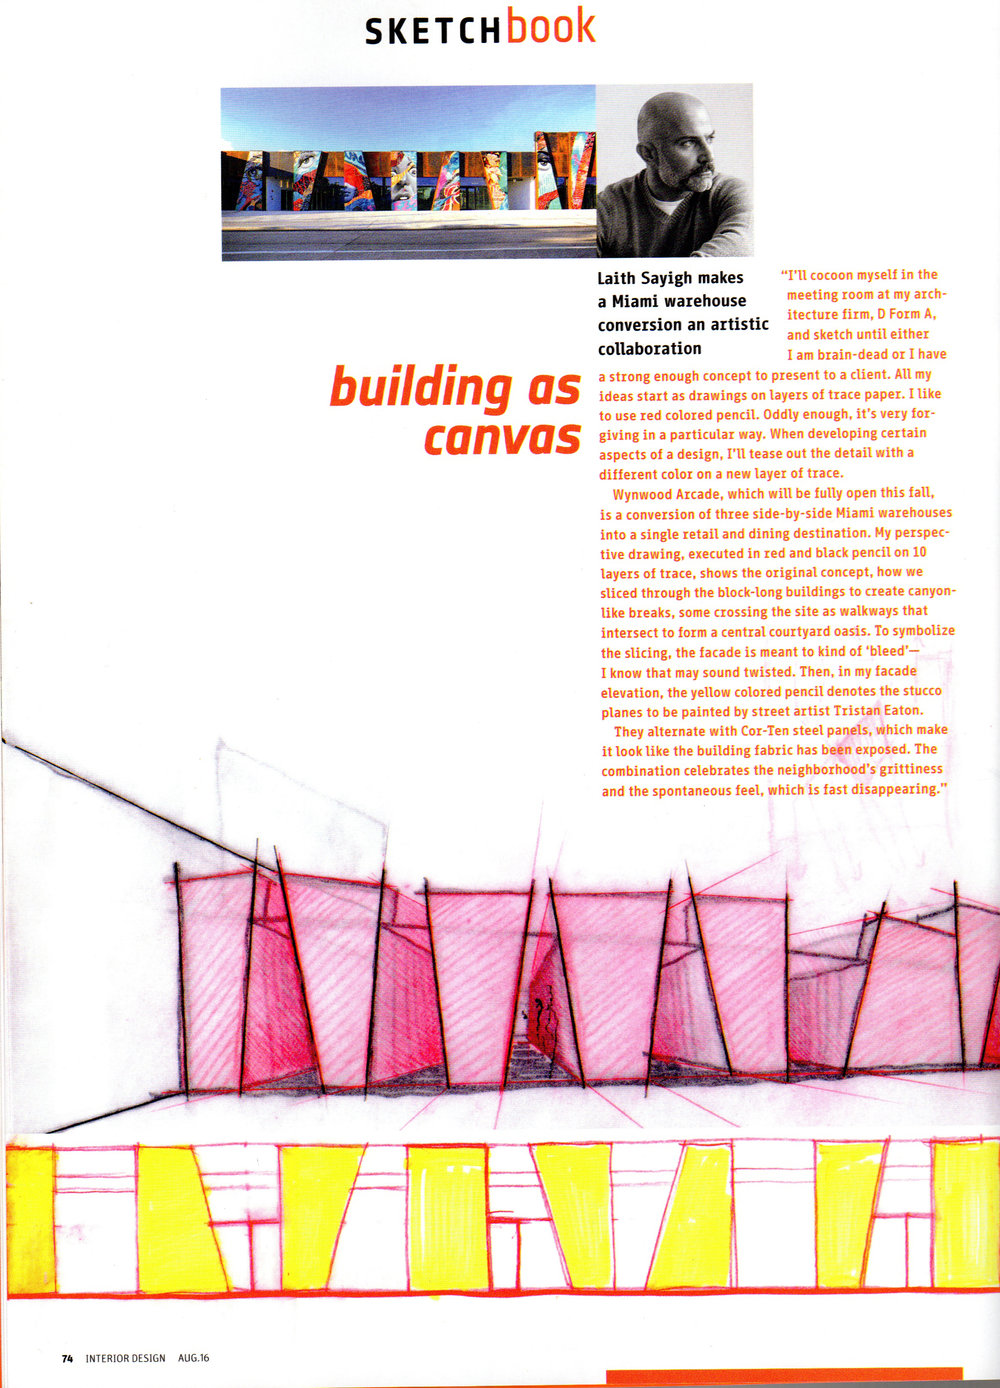 Laith Sayigh featured in Interior Design Magazine for artistic collaboration on Wynwood Arcade